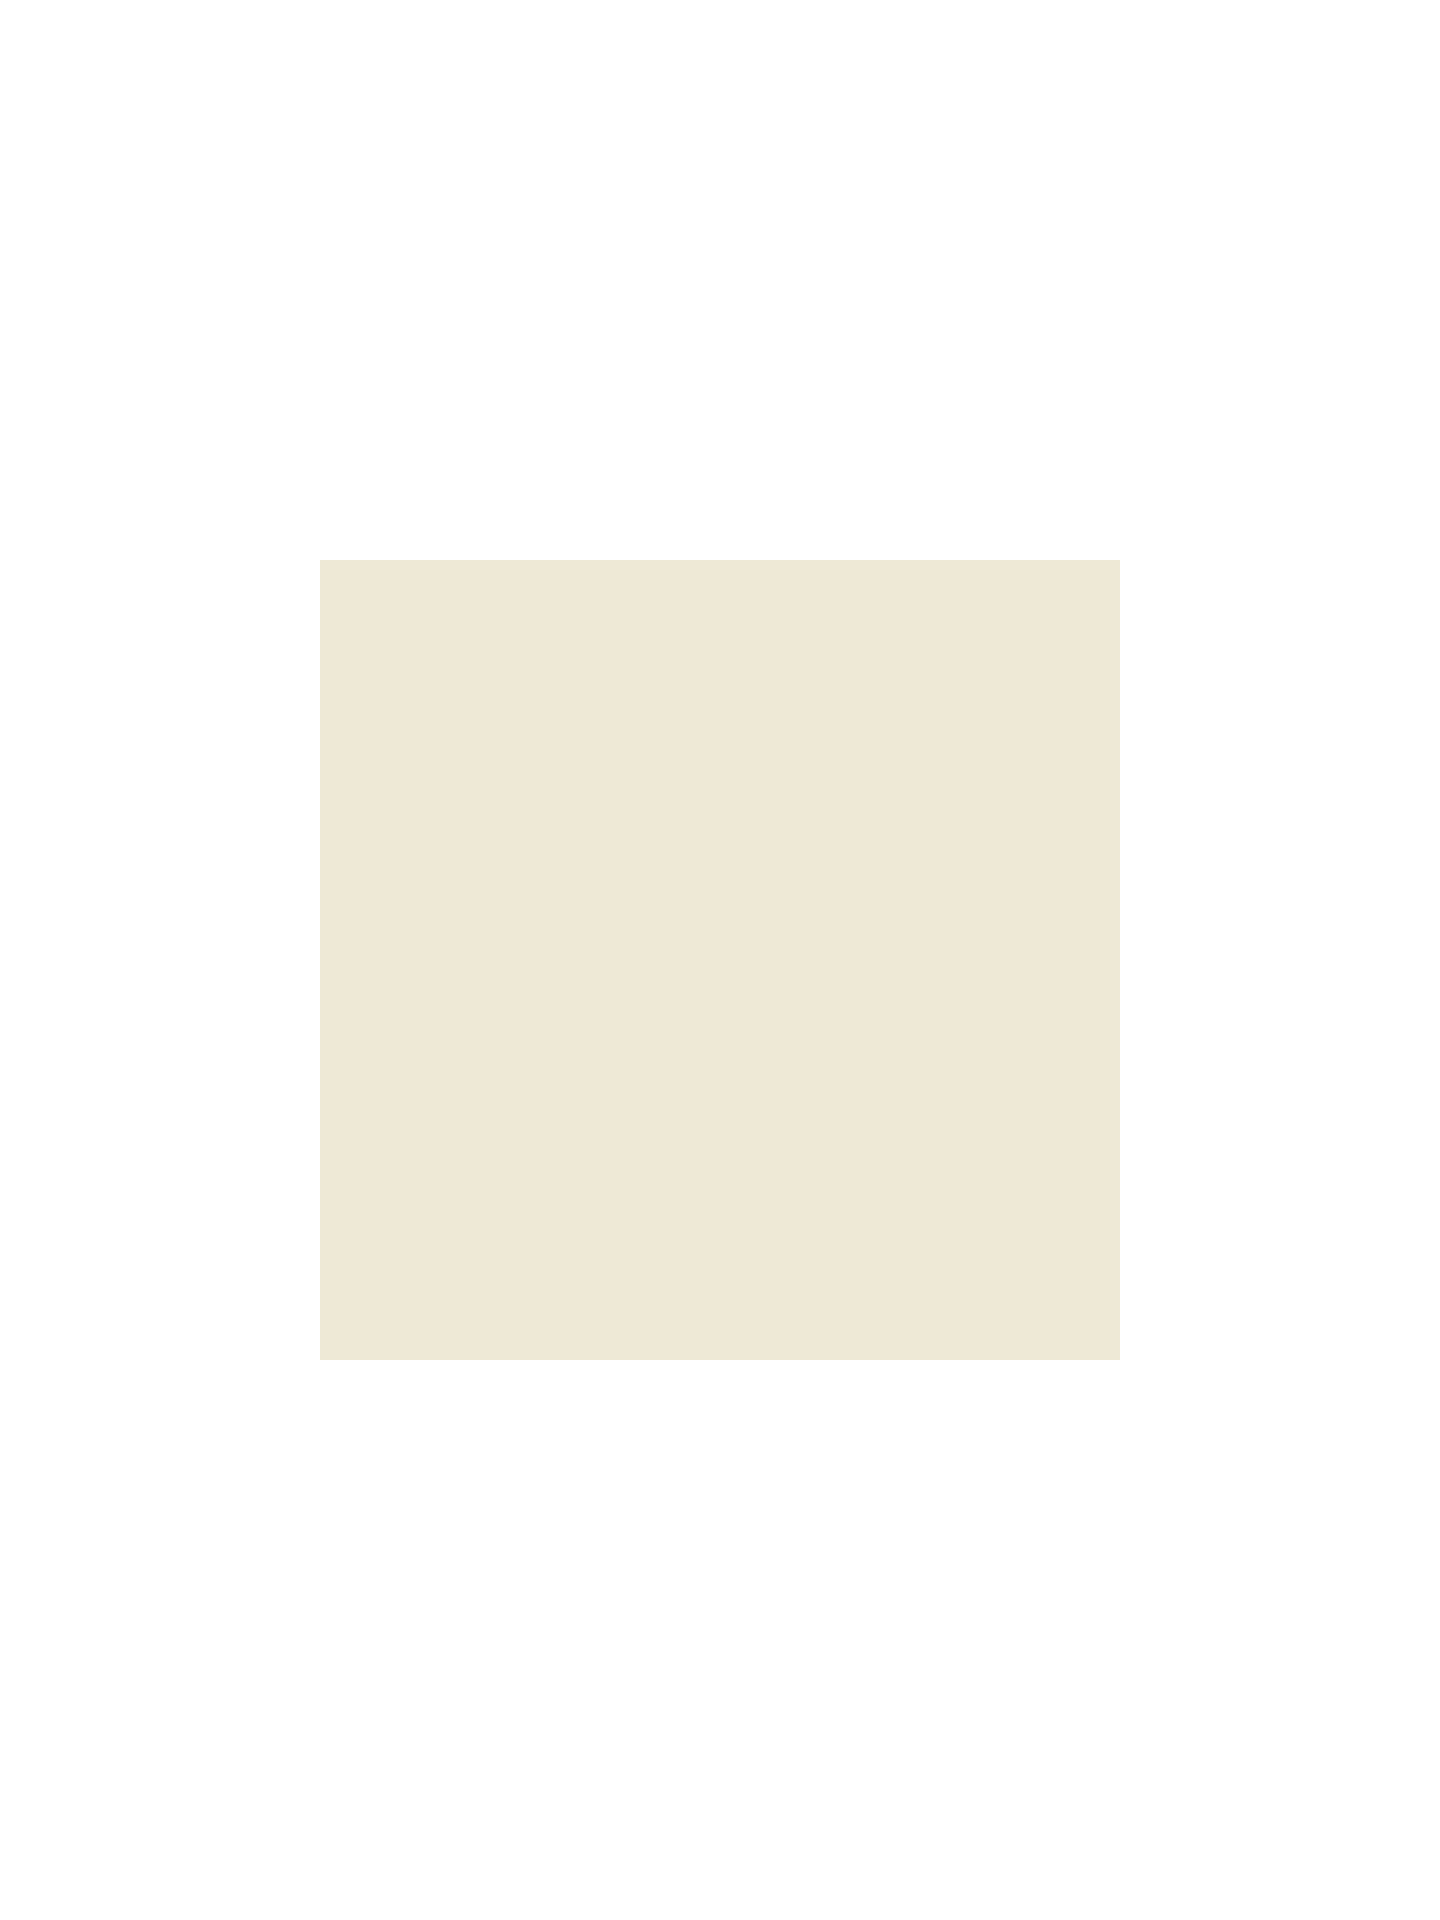 Buy The Little Greene Paint Company Intelligent Eggshell, Neutral Whites, Rolling Fog Pale (158), 1L Online at johnlewis.com